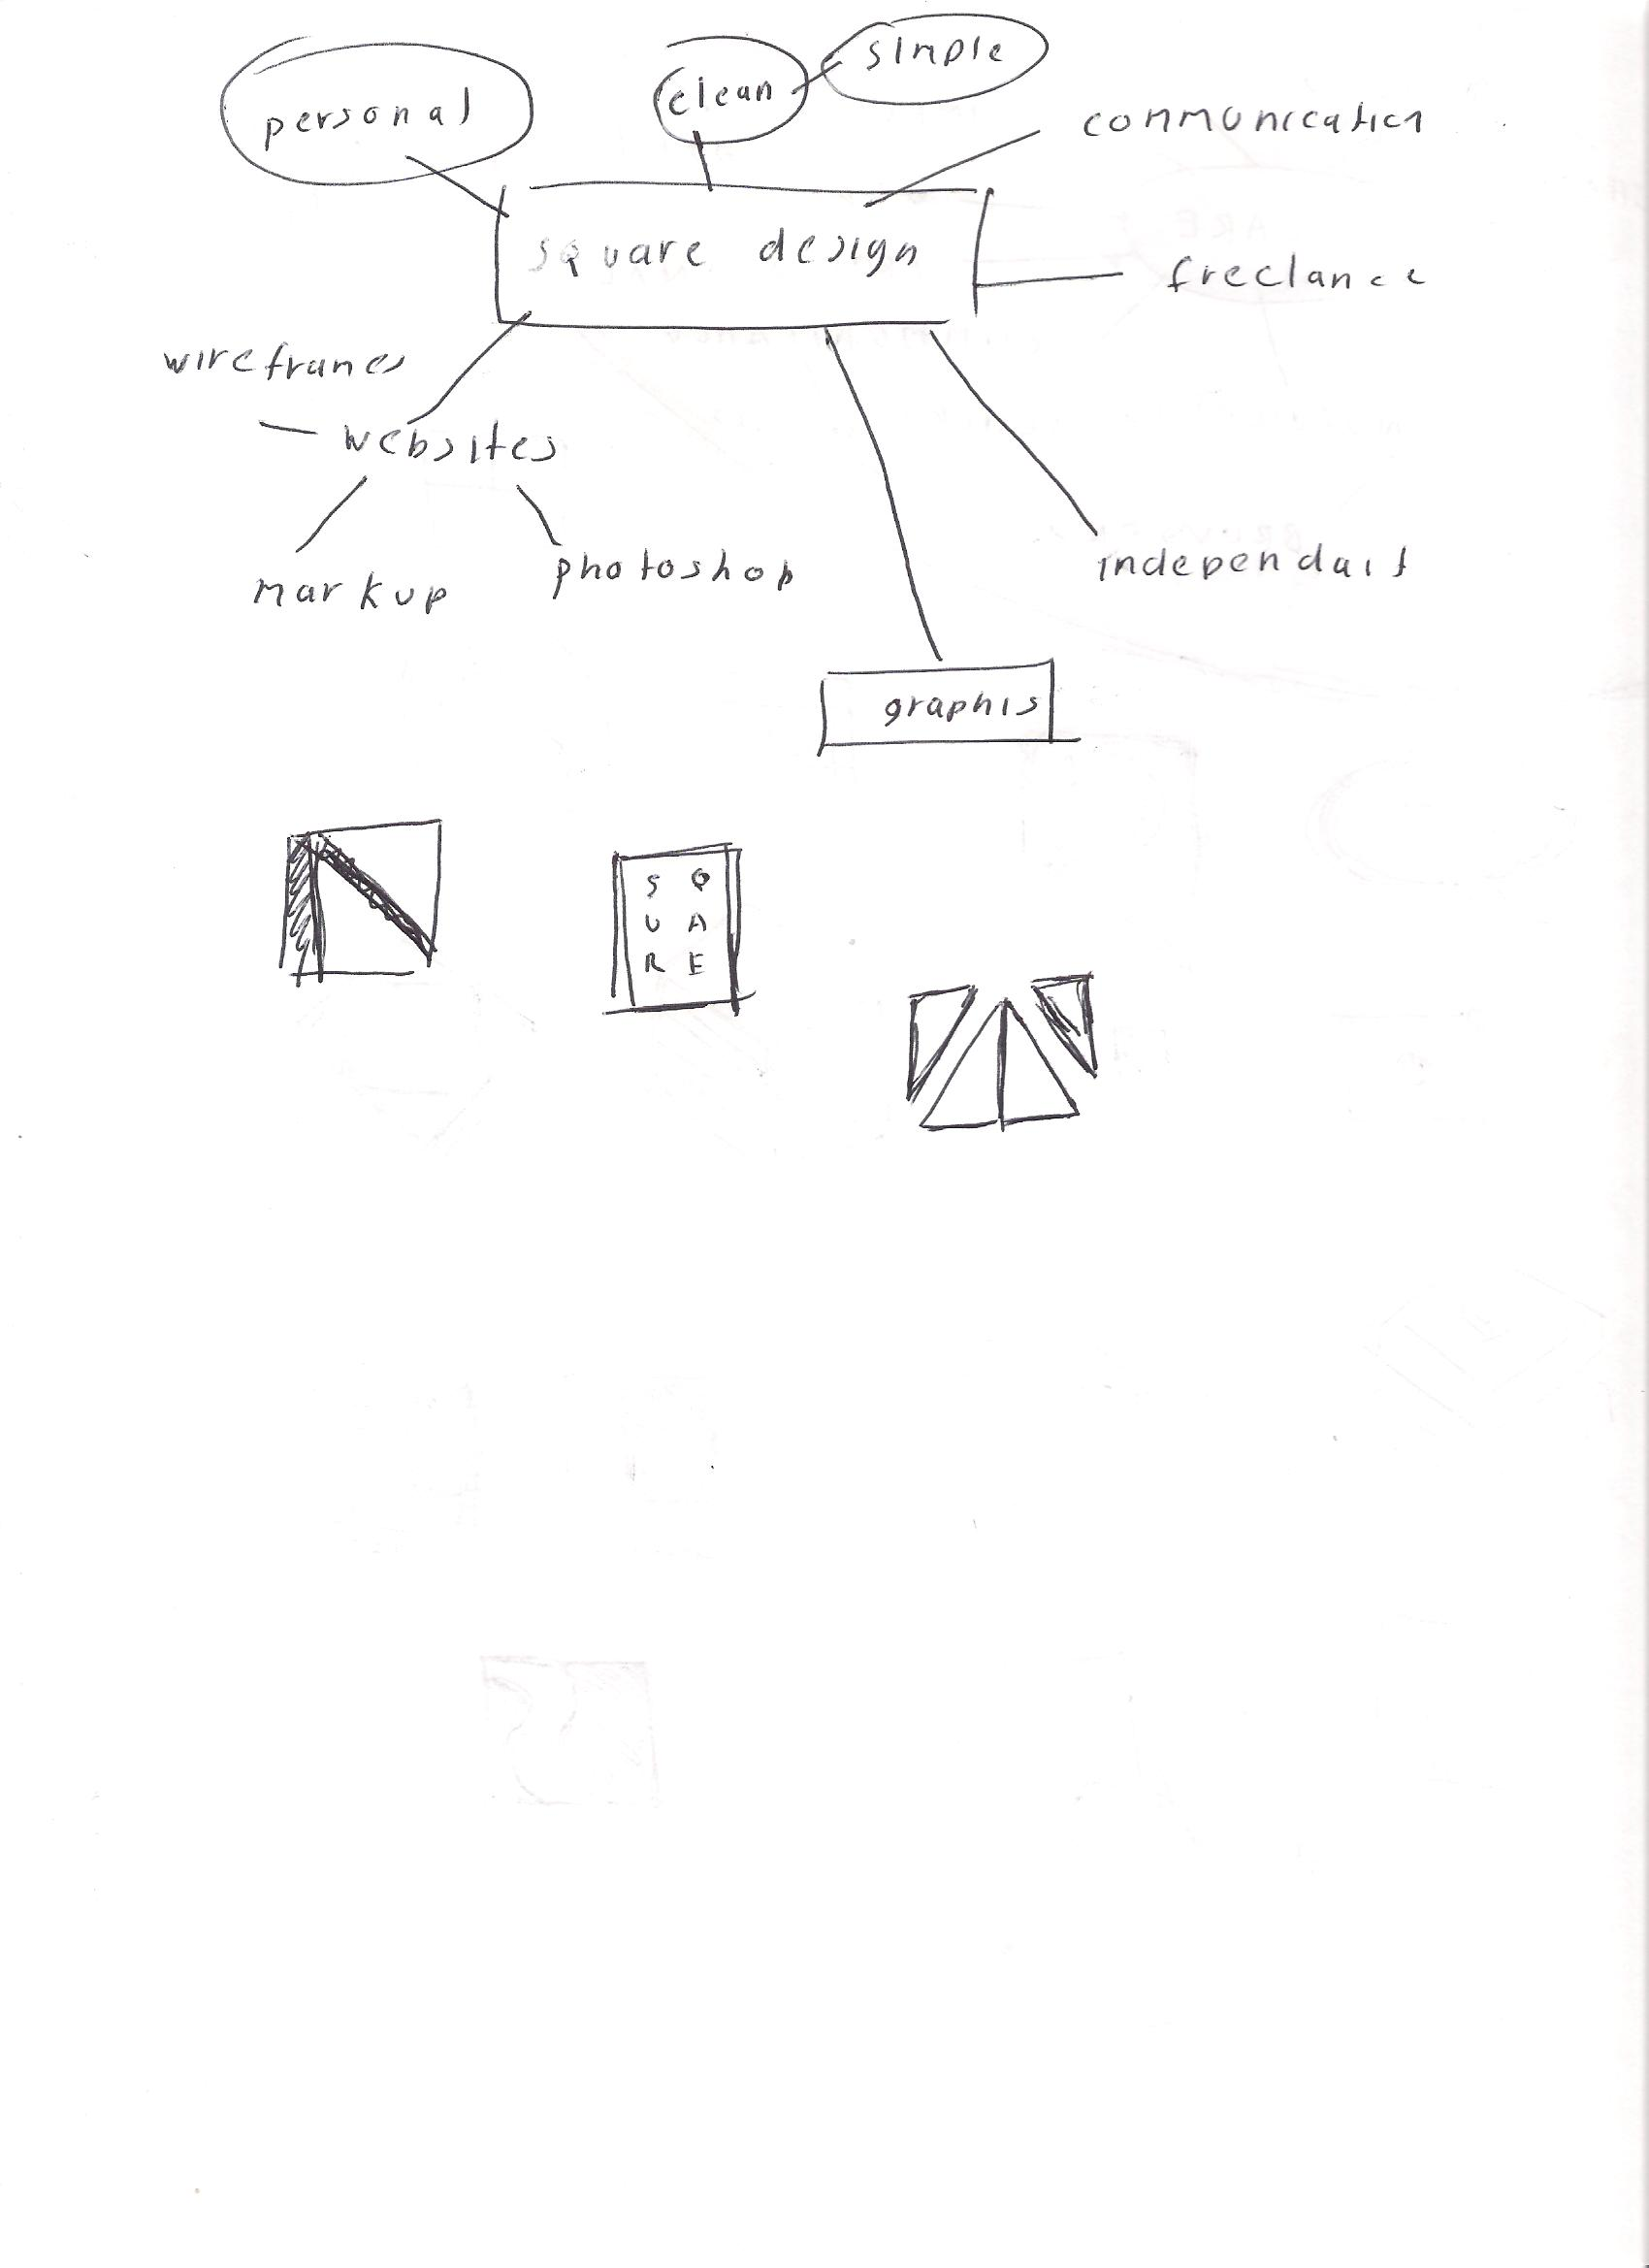 Square Design (Mood Boards)  - image 14 - student project